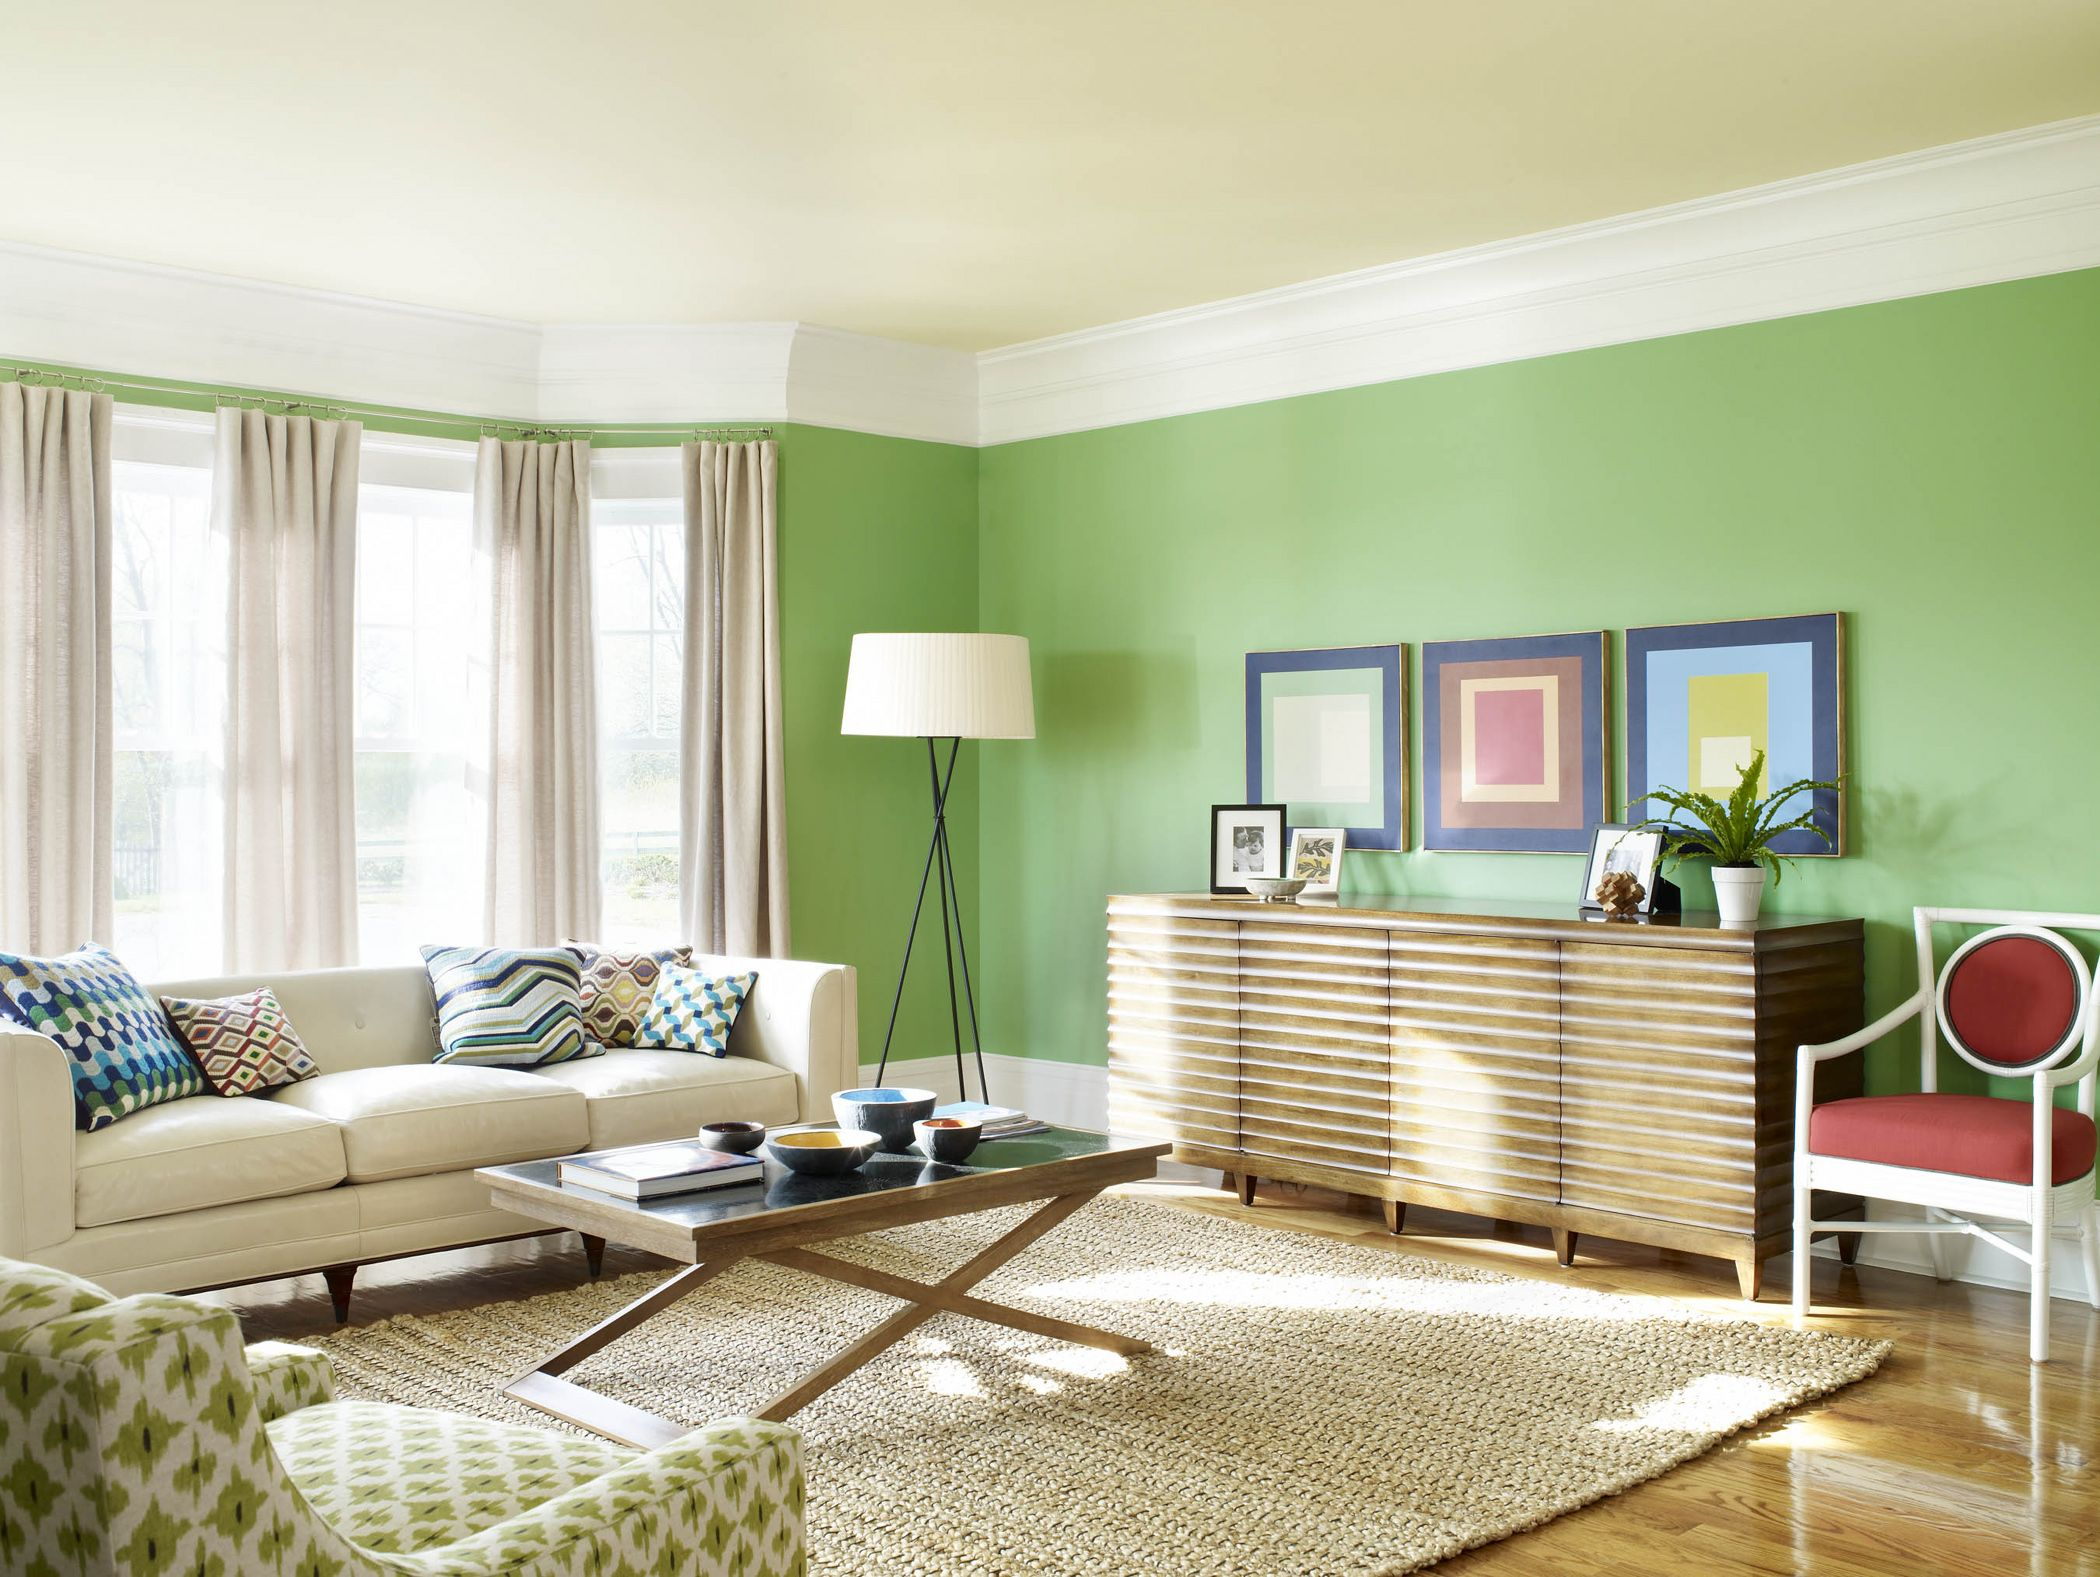 What Color Curtains Go With Green Walls 96712 Bedroom Lime Green Wall Decor What Color Curta In 2020 Room Paint Designs Living Room Colors Paint Colors For Living Room